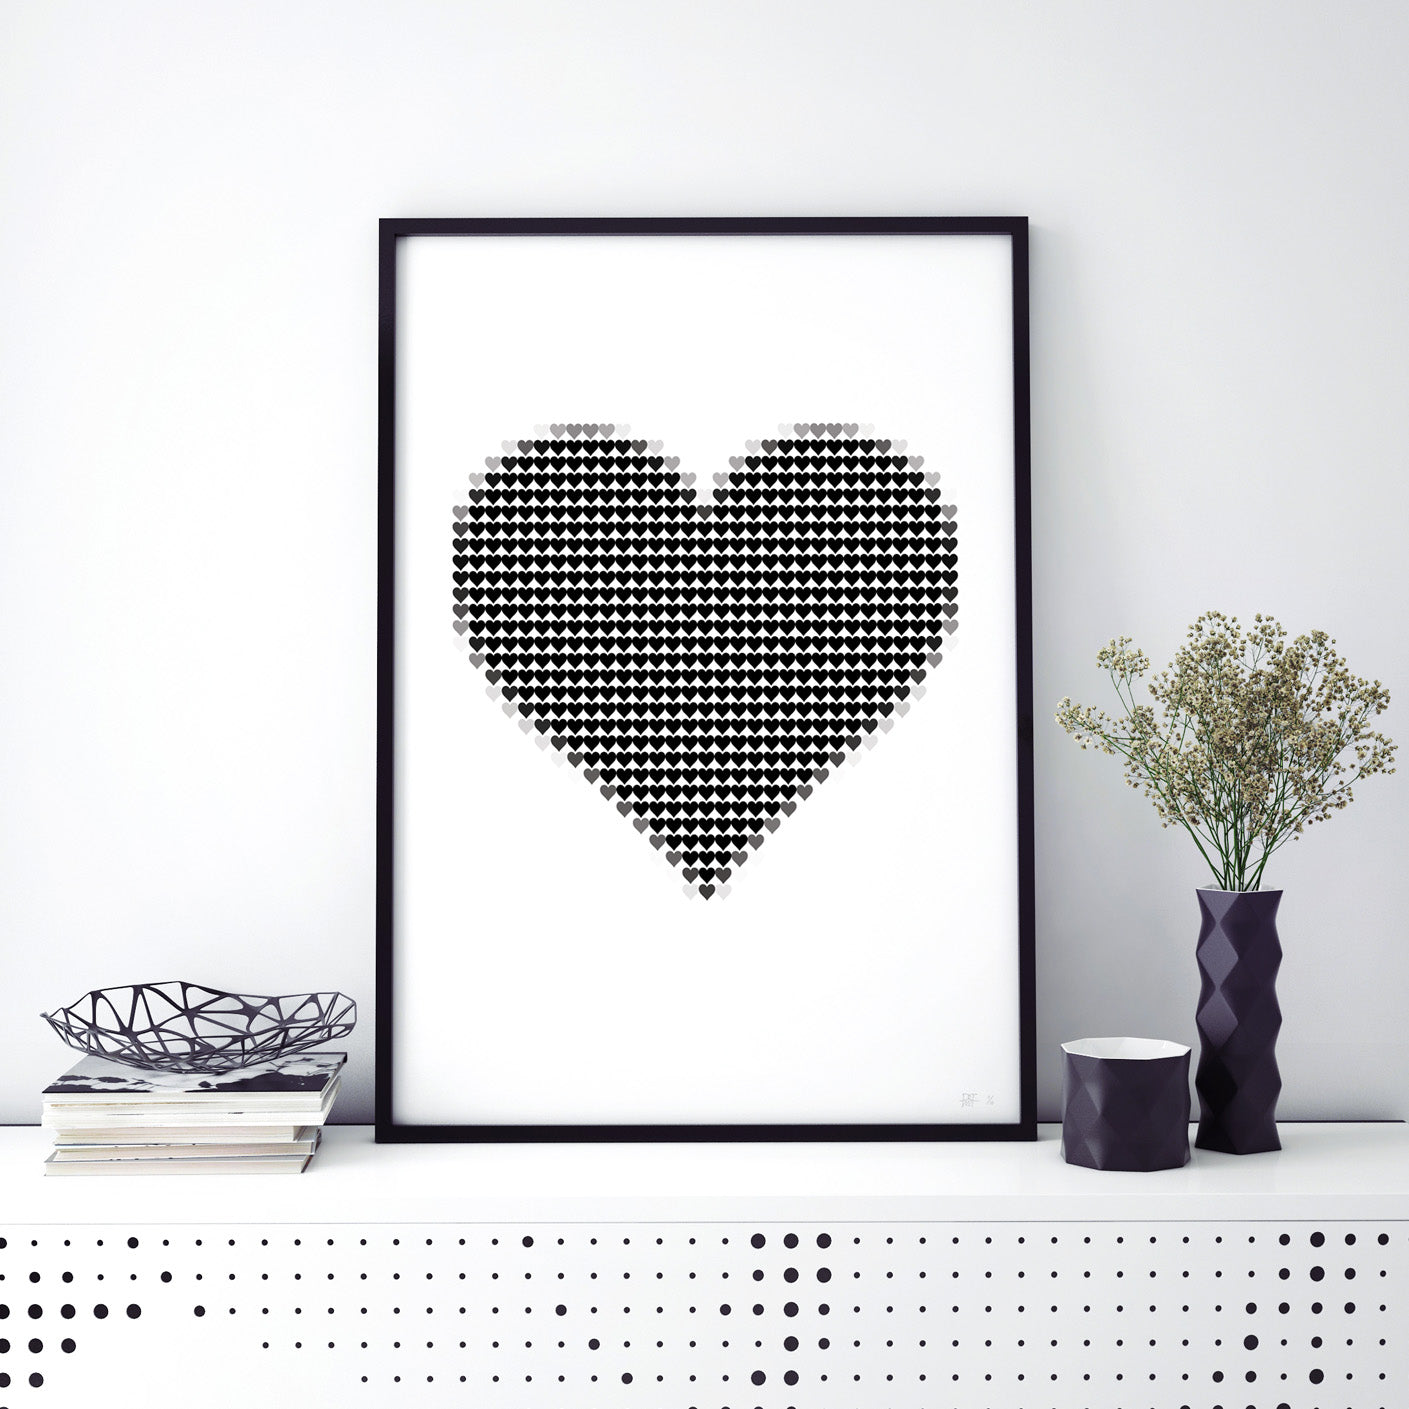 what Phil sees studio creatives and designs typography and photography limited edition art prints this is called my pixel heart